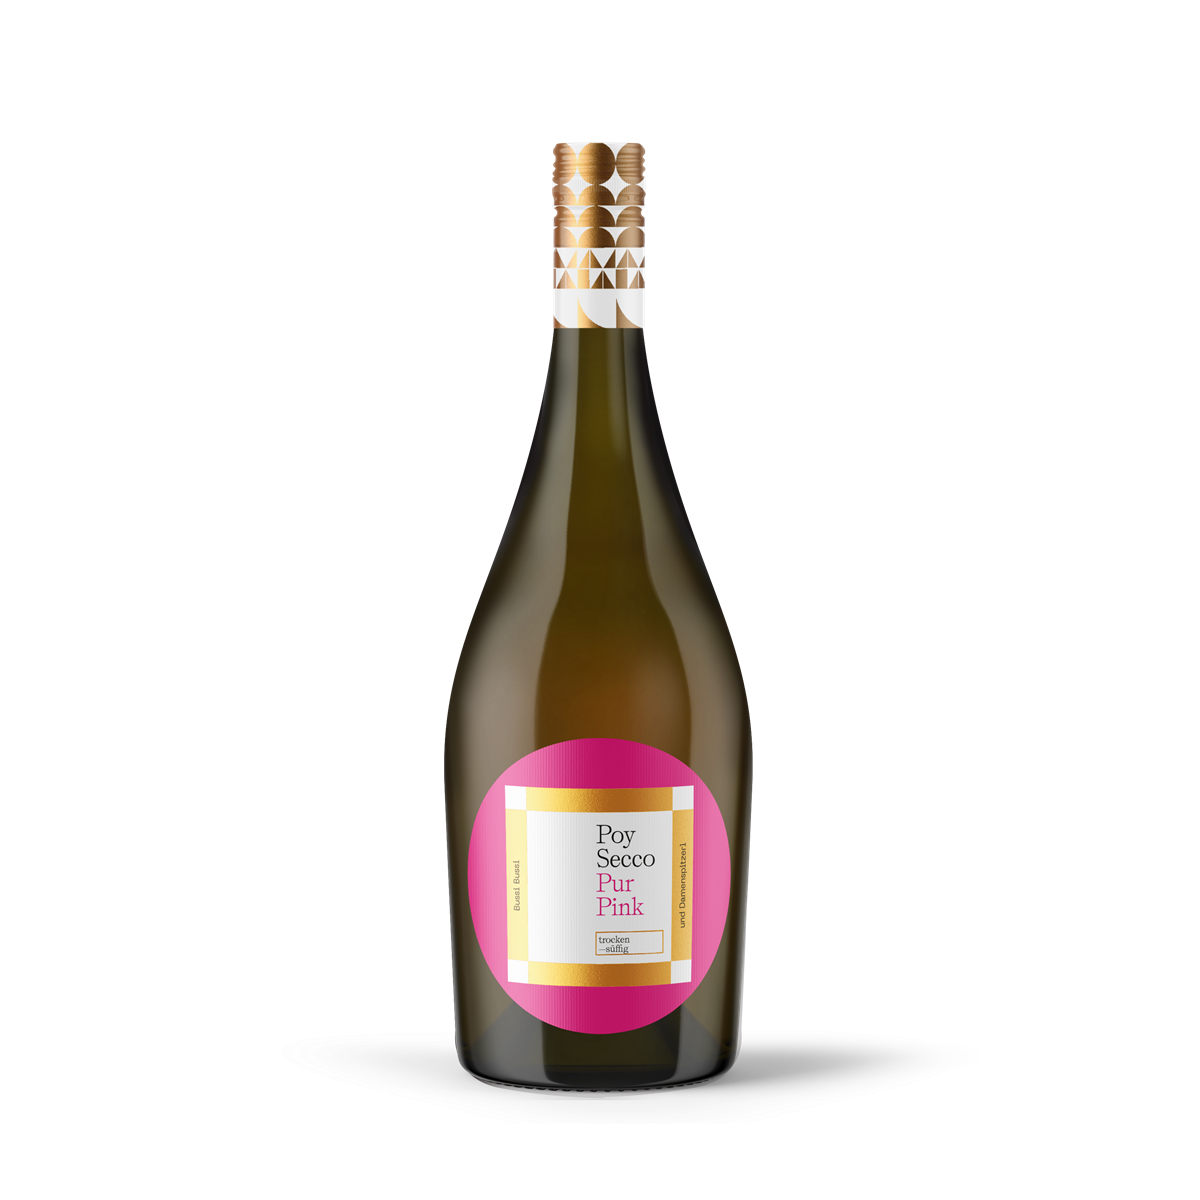 Poy-Secco_Pur Pink_EUR 7,90